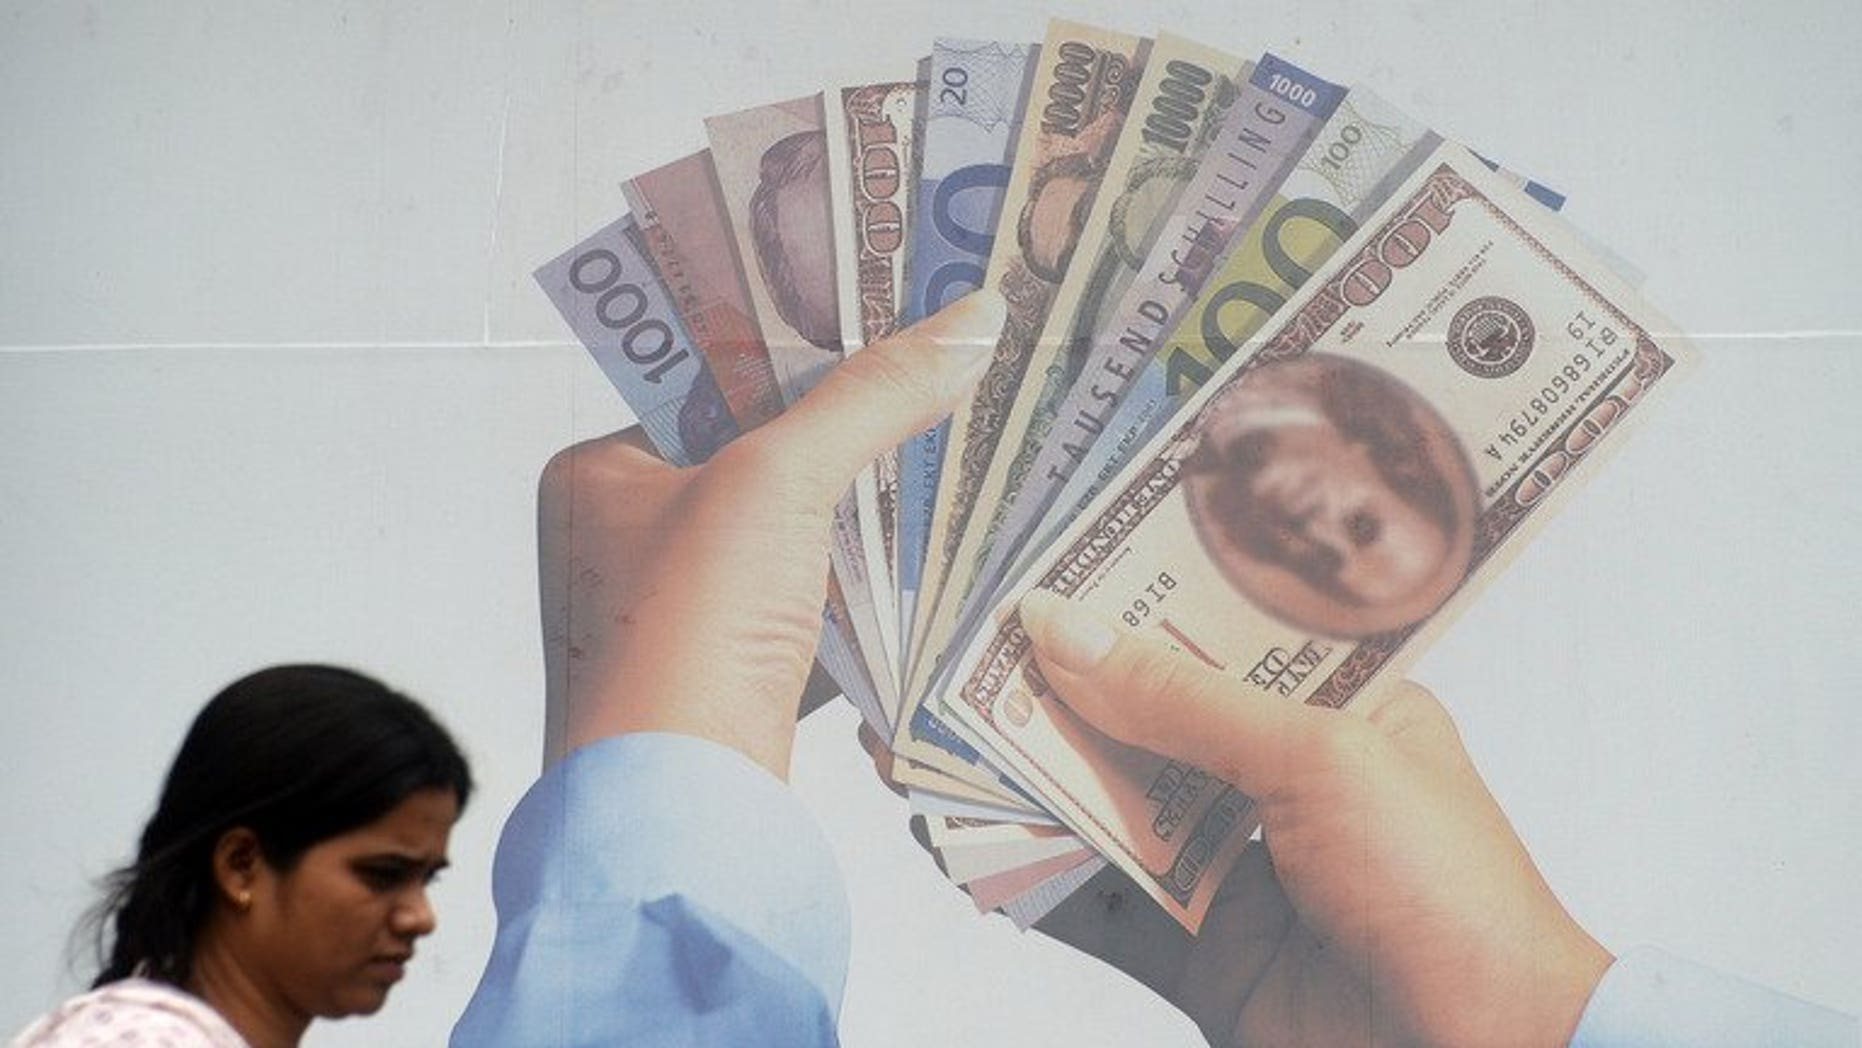 A pedestrian walks past a foreign exchange advertising billboard in Mumbai, on June 20, 2013. Rupee firmed against the dollar on Friday, a day after a government advisor said steps were being taken to boost growth and reduce the high current account deficit.